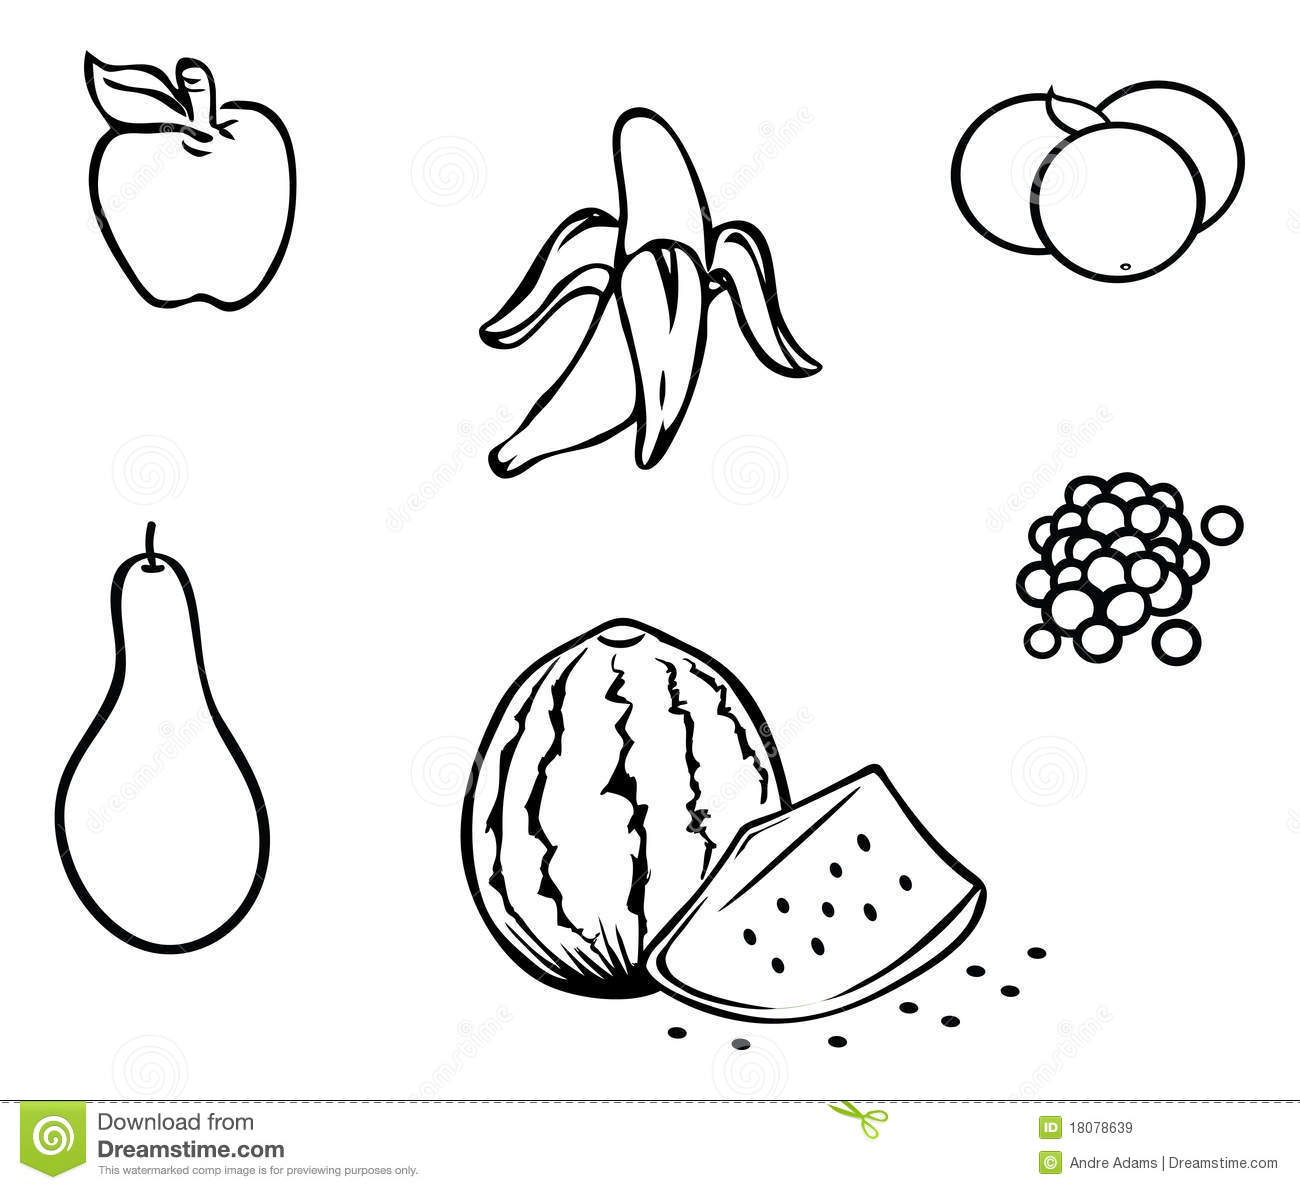 Contour De Fruits Illustration De Vecteur Illustration Du